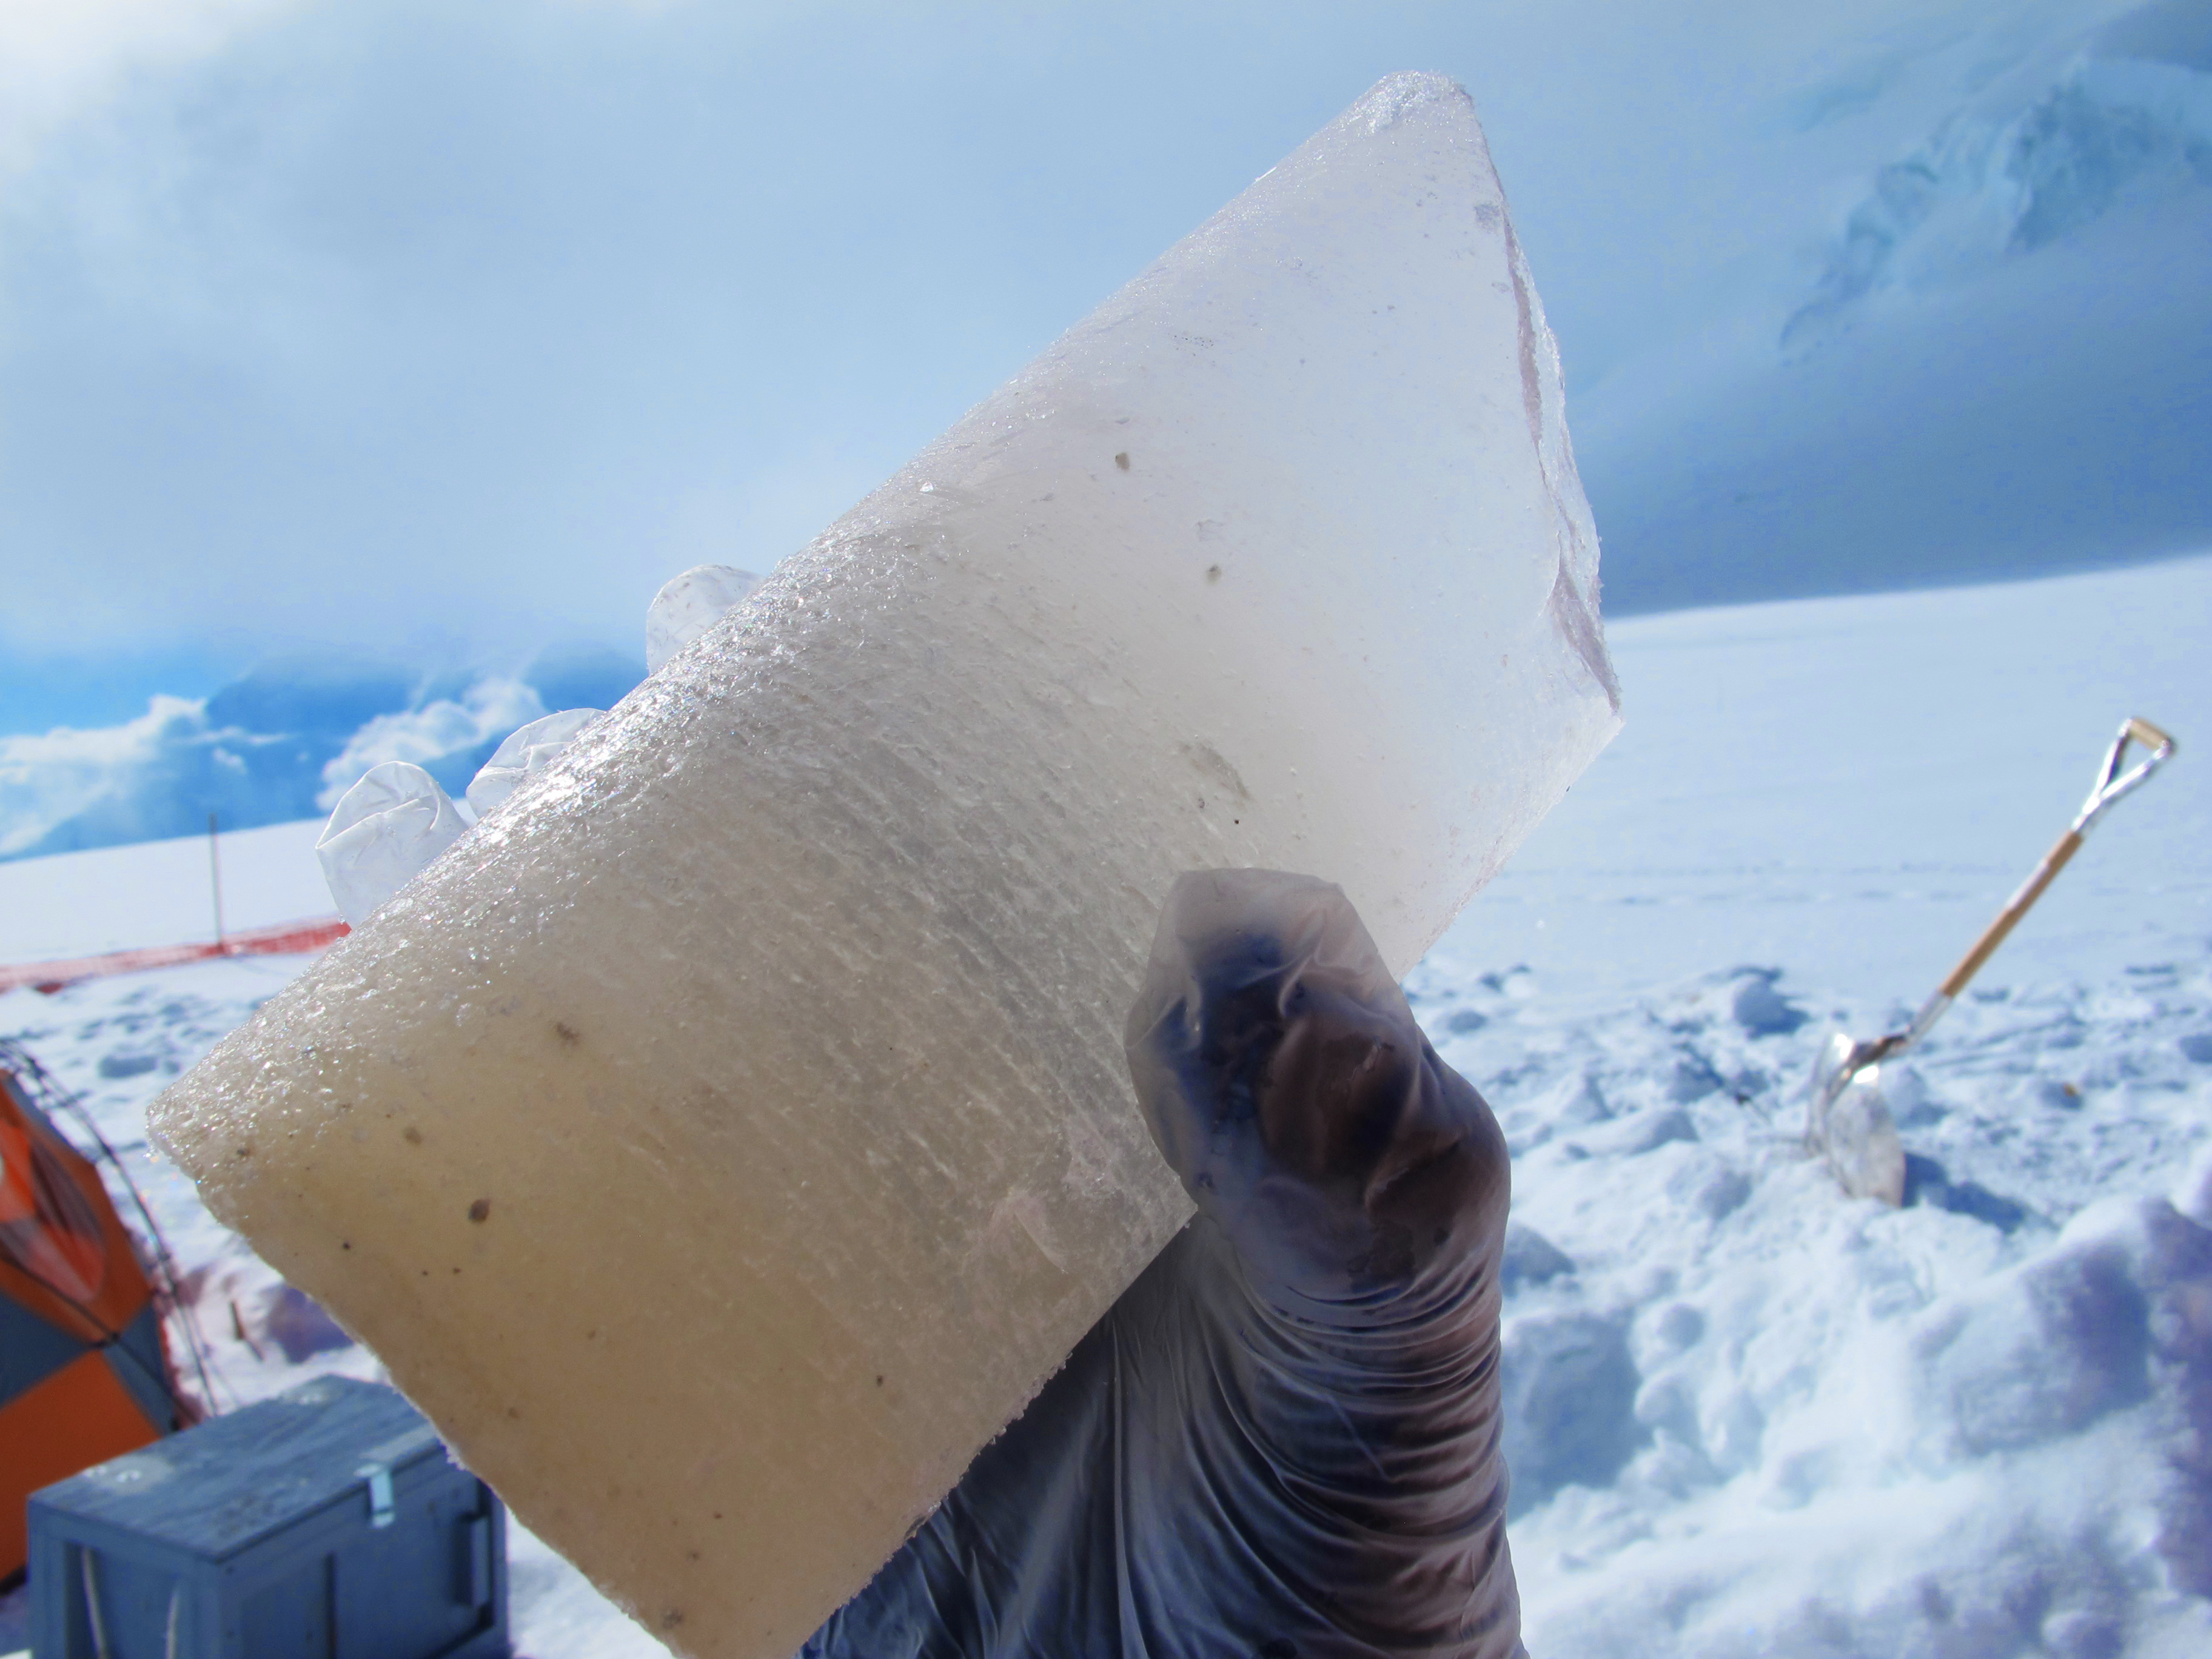 Ice core dating flaws means